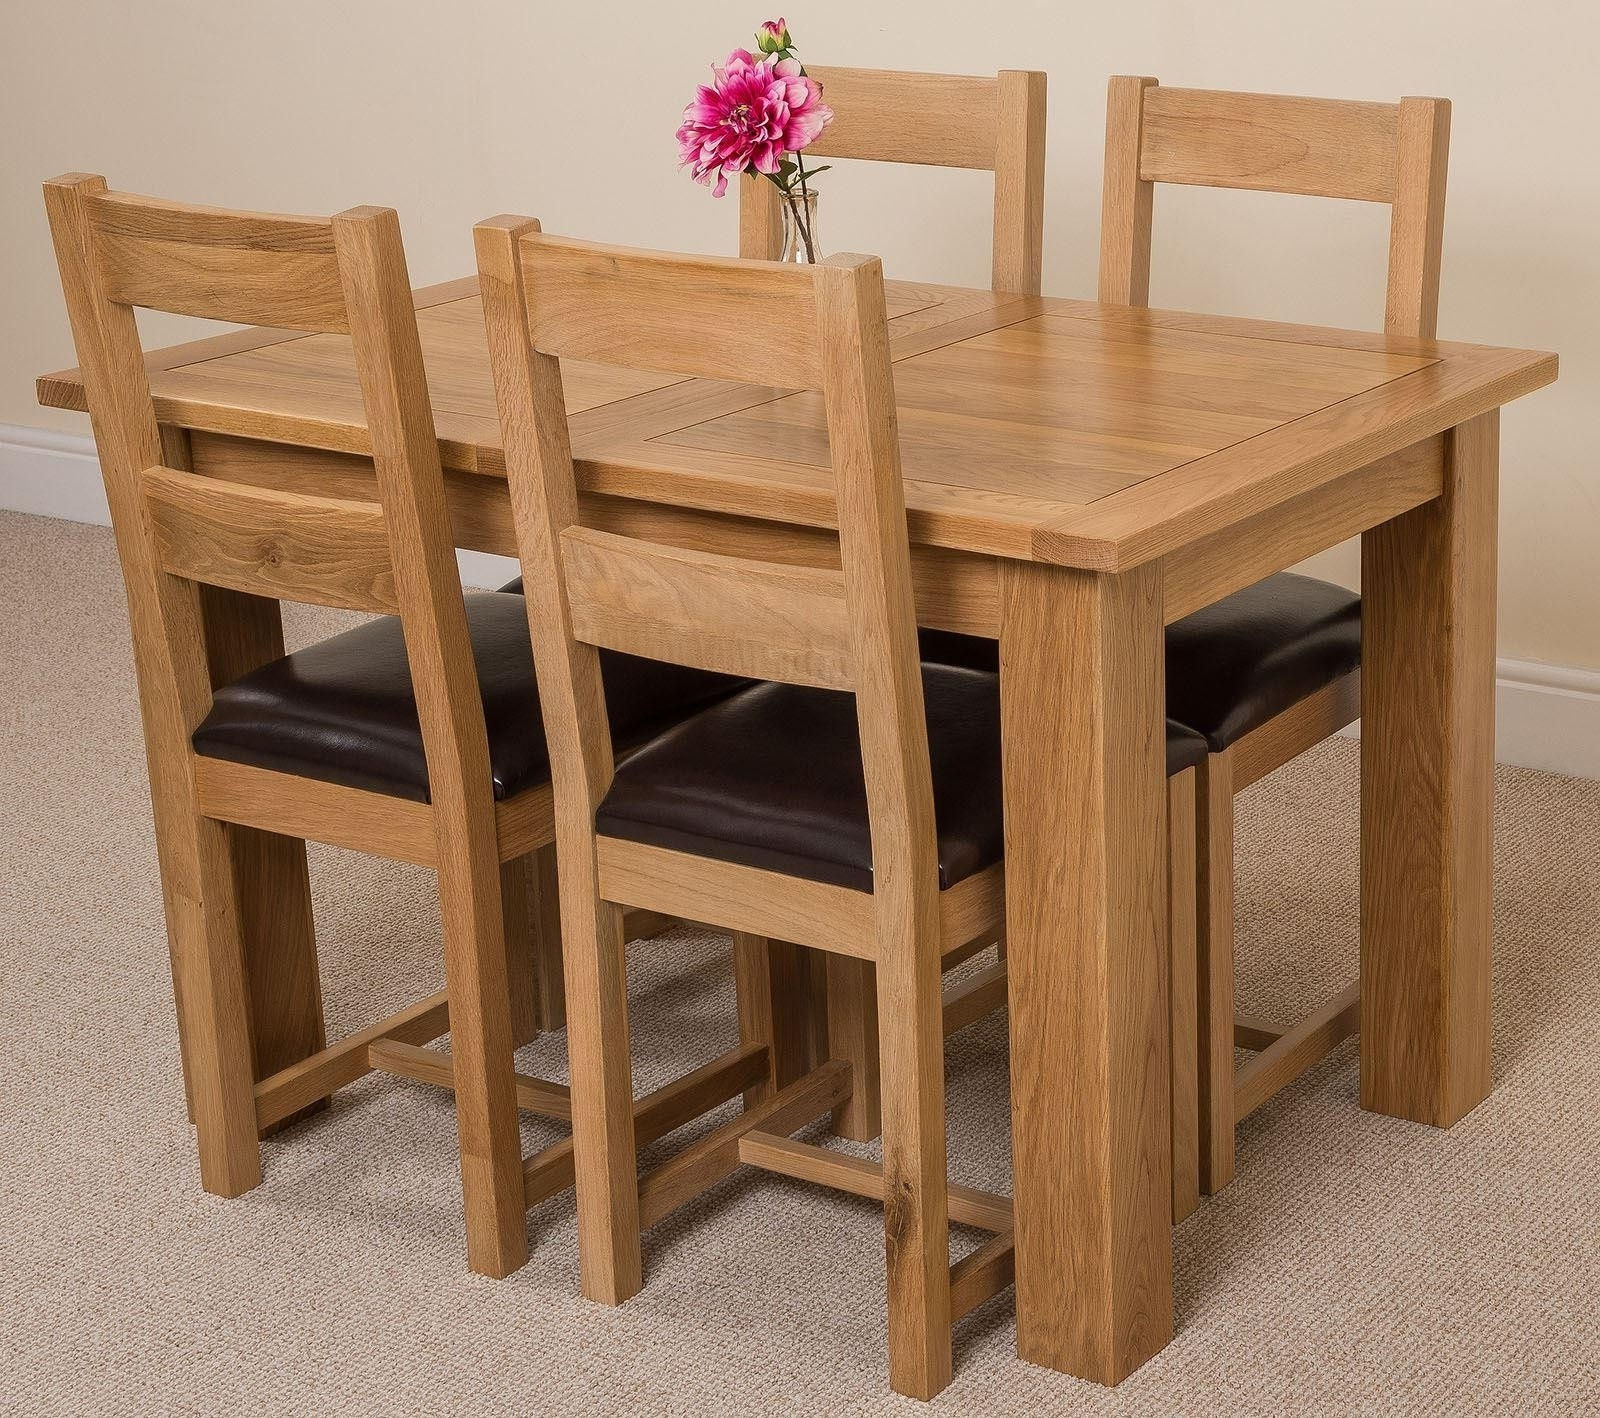 Oak Furniture King Regarding Favorite Oak Extending Dining Tables And 4 Chairs (View 19 of 25)